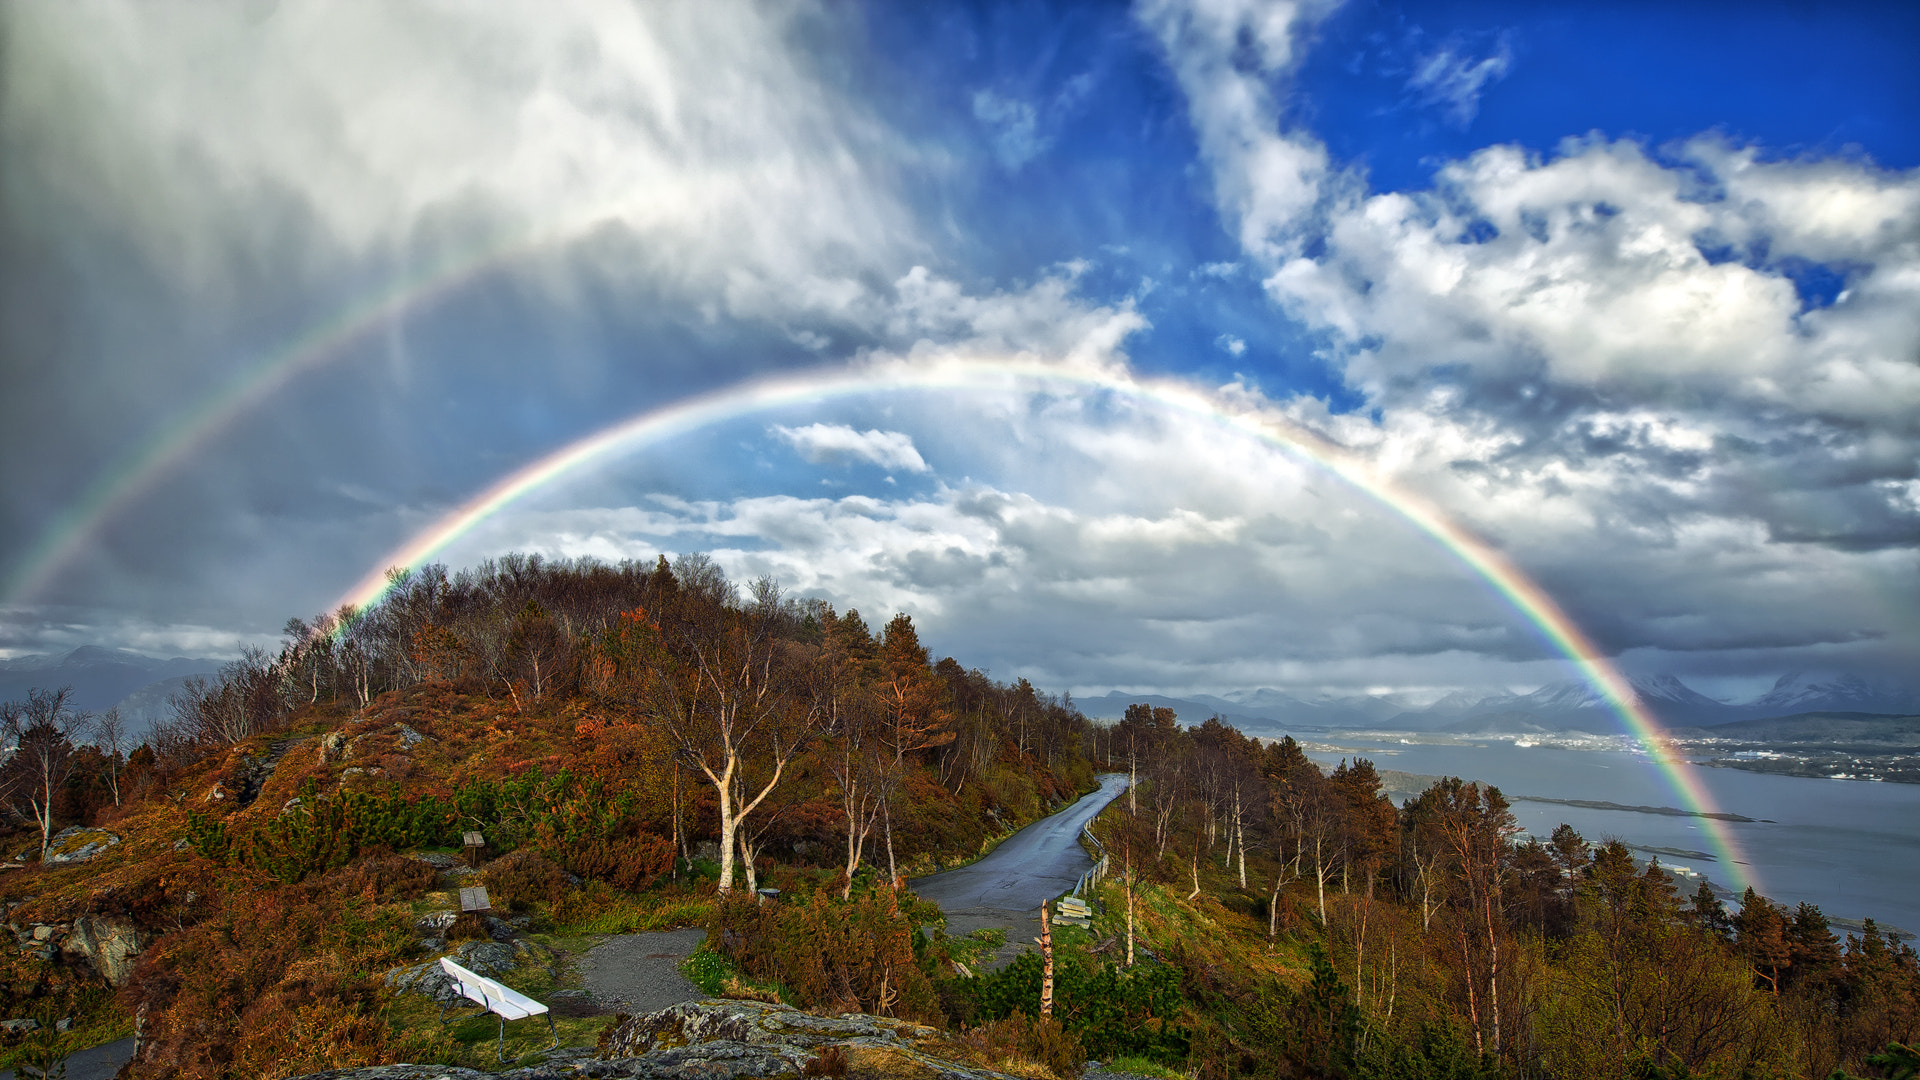 Photograph Double Rainbow by Stian Rekdal on 500px